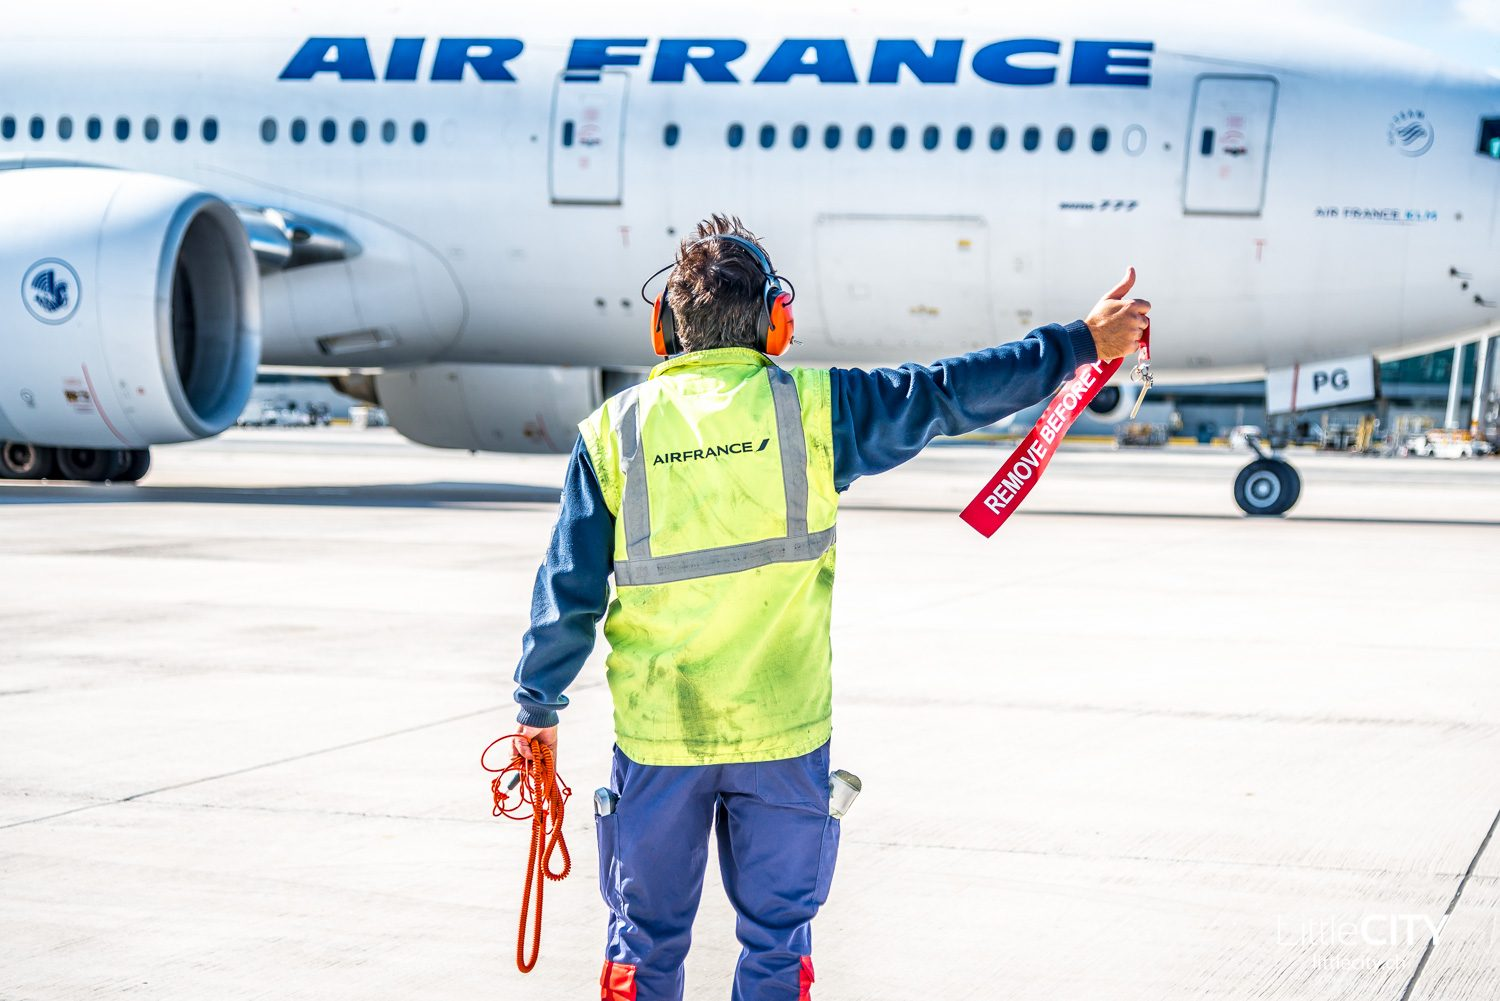 Air France Boeing 777 Pushback - Behind the Scenes at CDG Paris